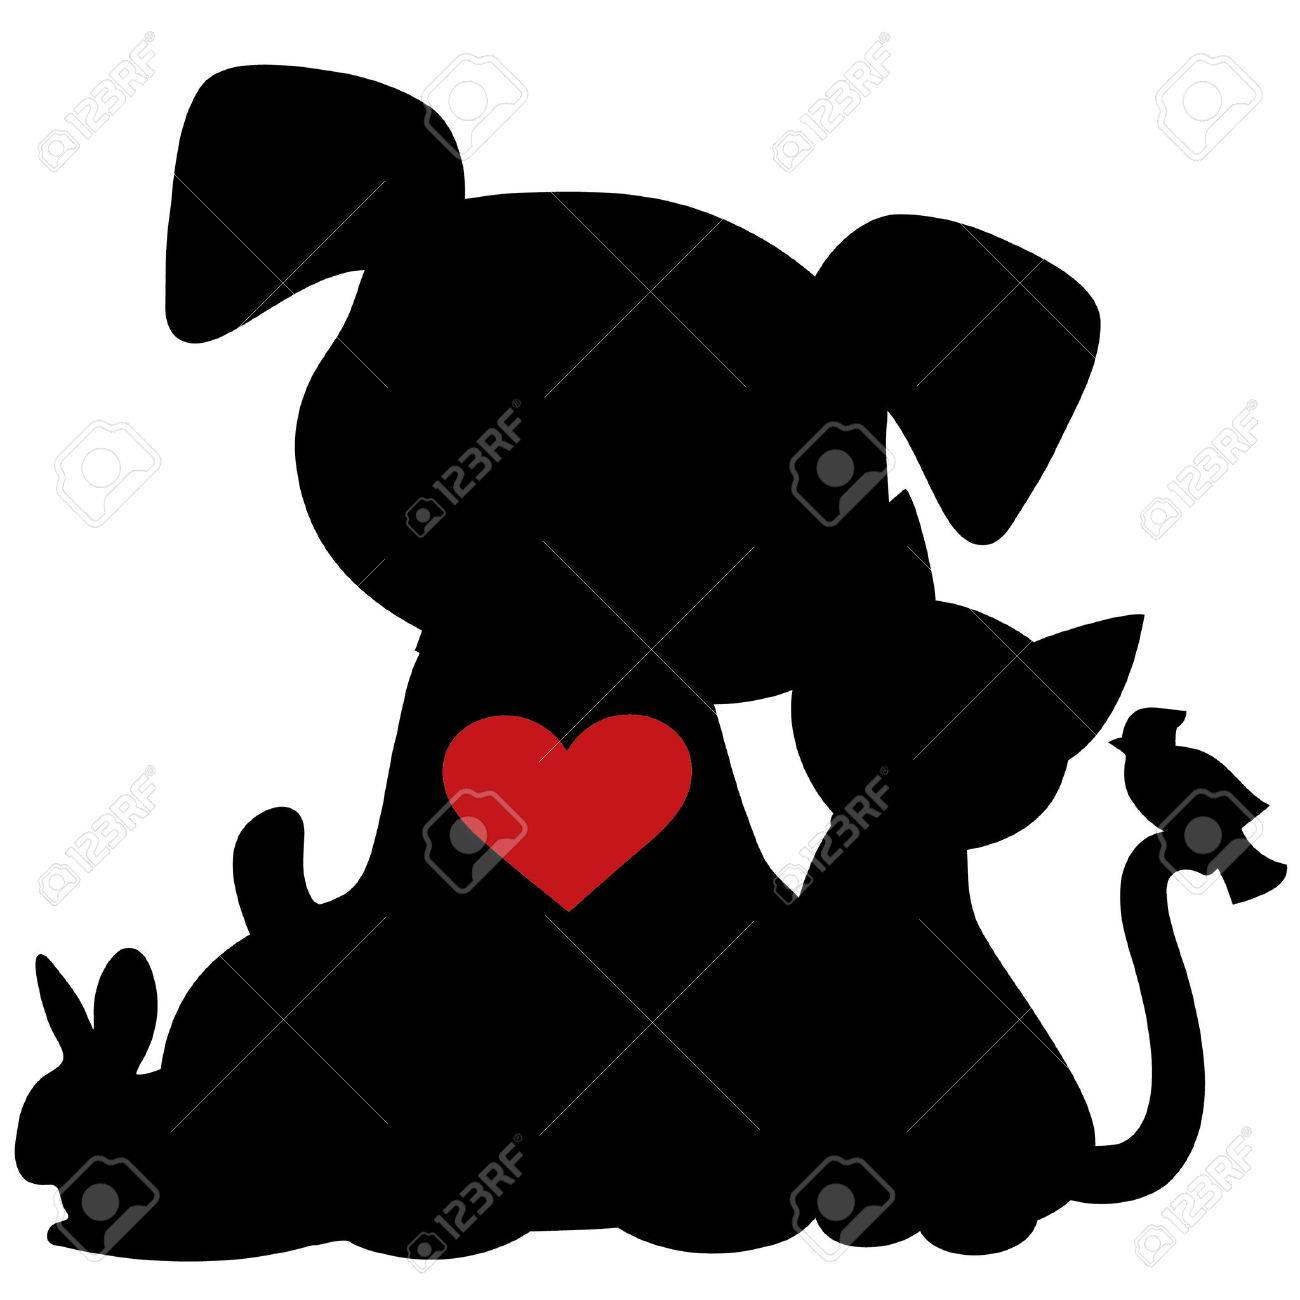 A silhouette of a group of pets including a dog, cat, rabbit and bird. There is a red heart on the dogs chest - 30636769